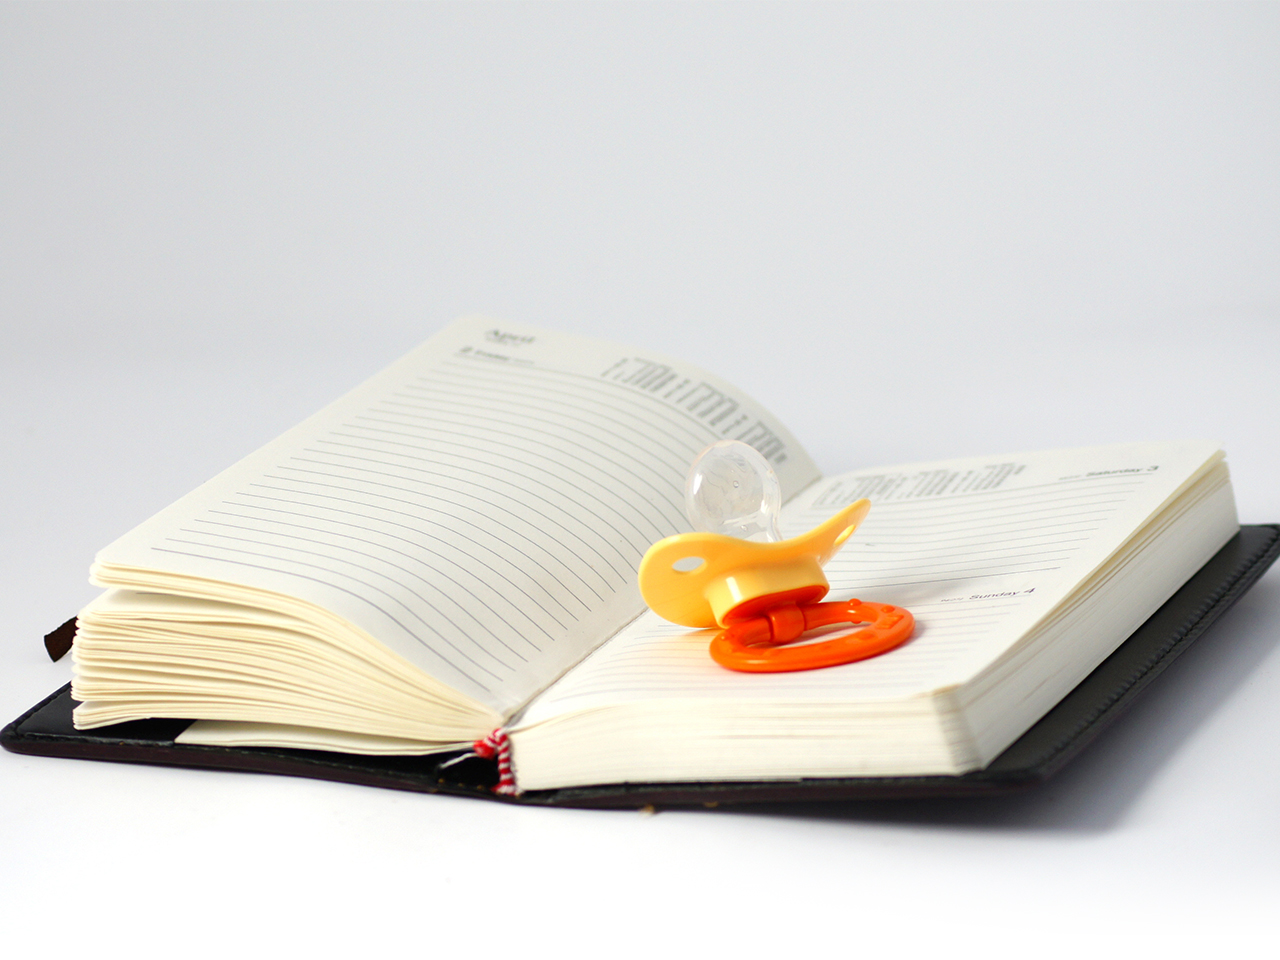 Pacifier on an open book